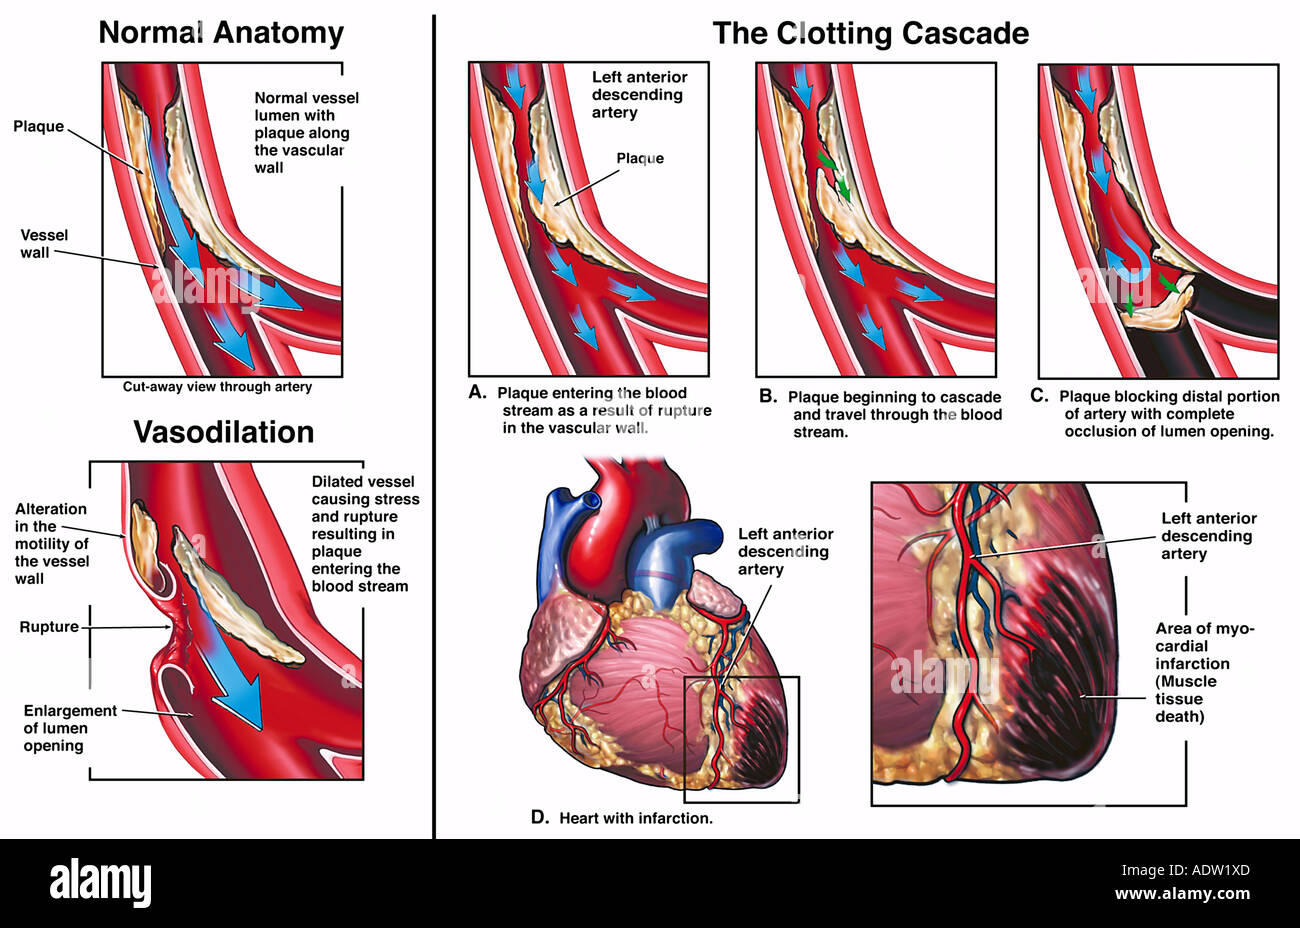 Mechanism Of Myocardial Infarction Due To Ruptured Coronary Artery